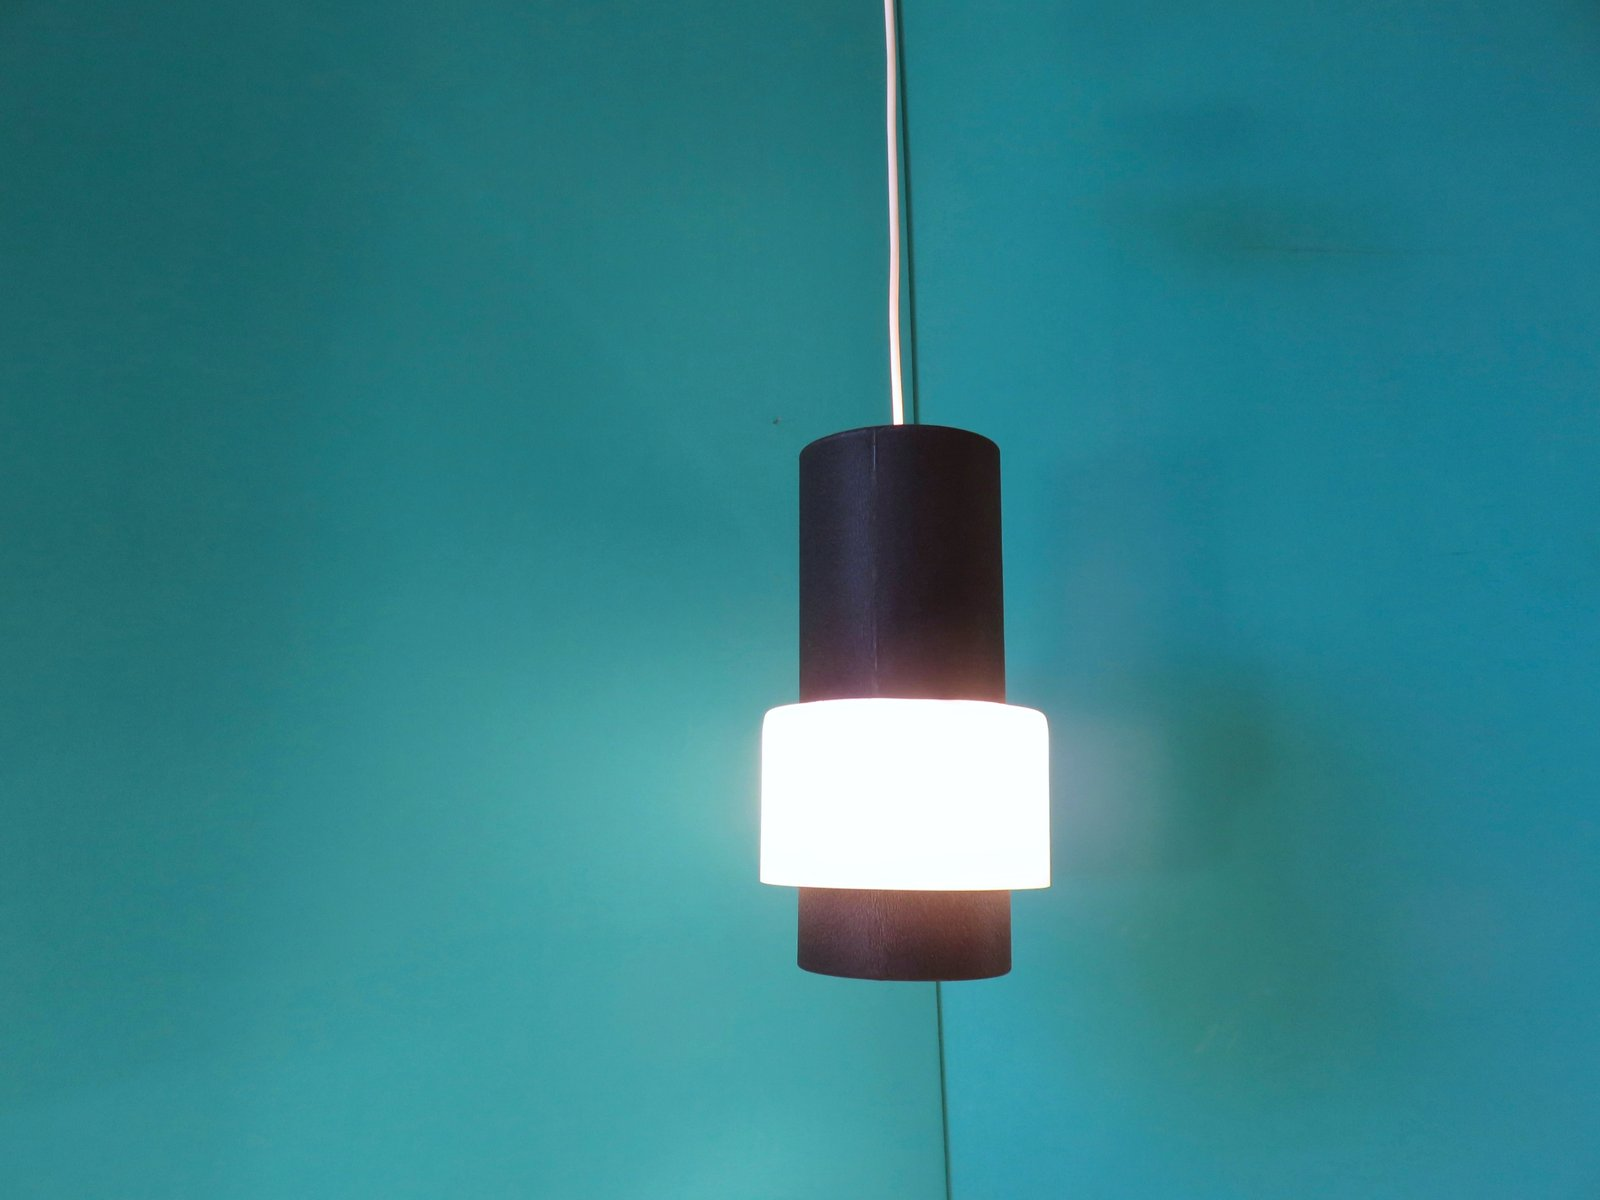 Suspension 4 Lampes Of Dutch Suspension Lamp By Louis Kalff For Philips 1960s